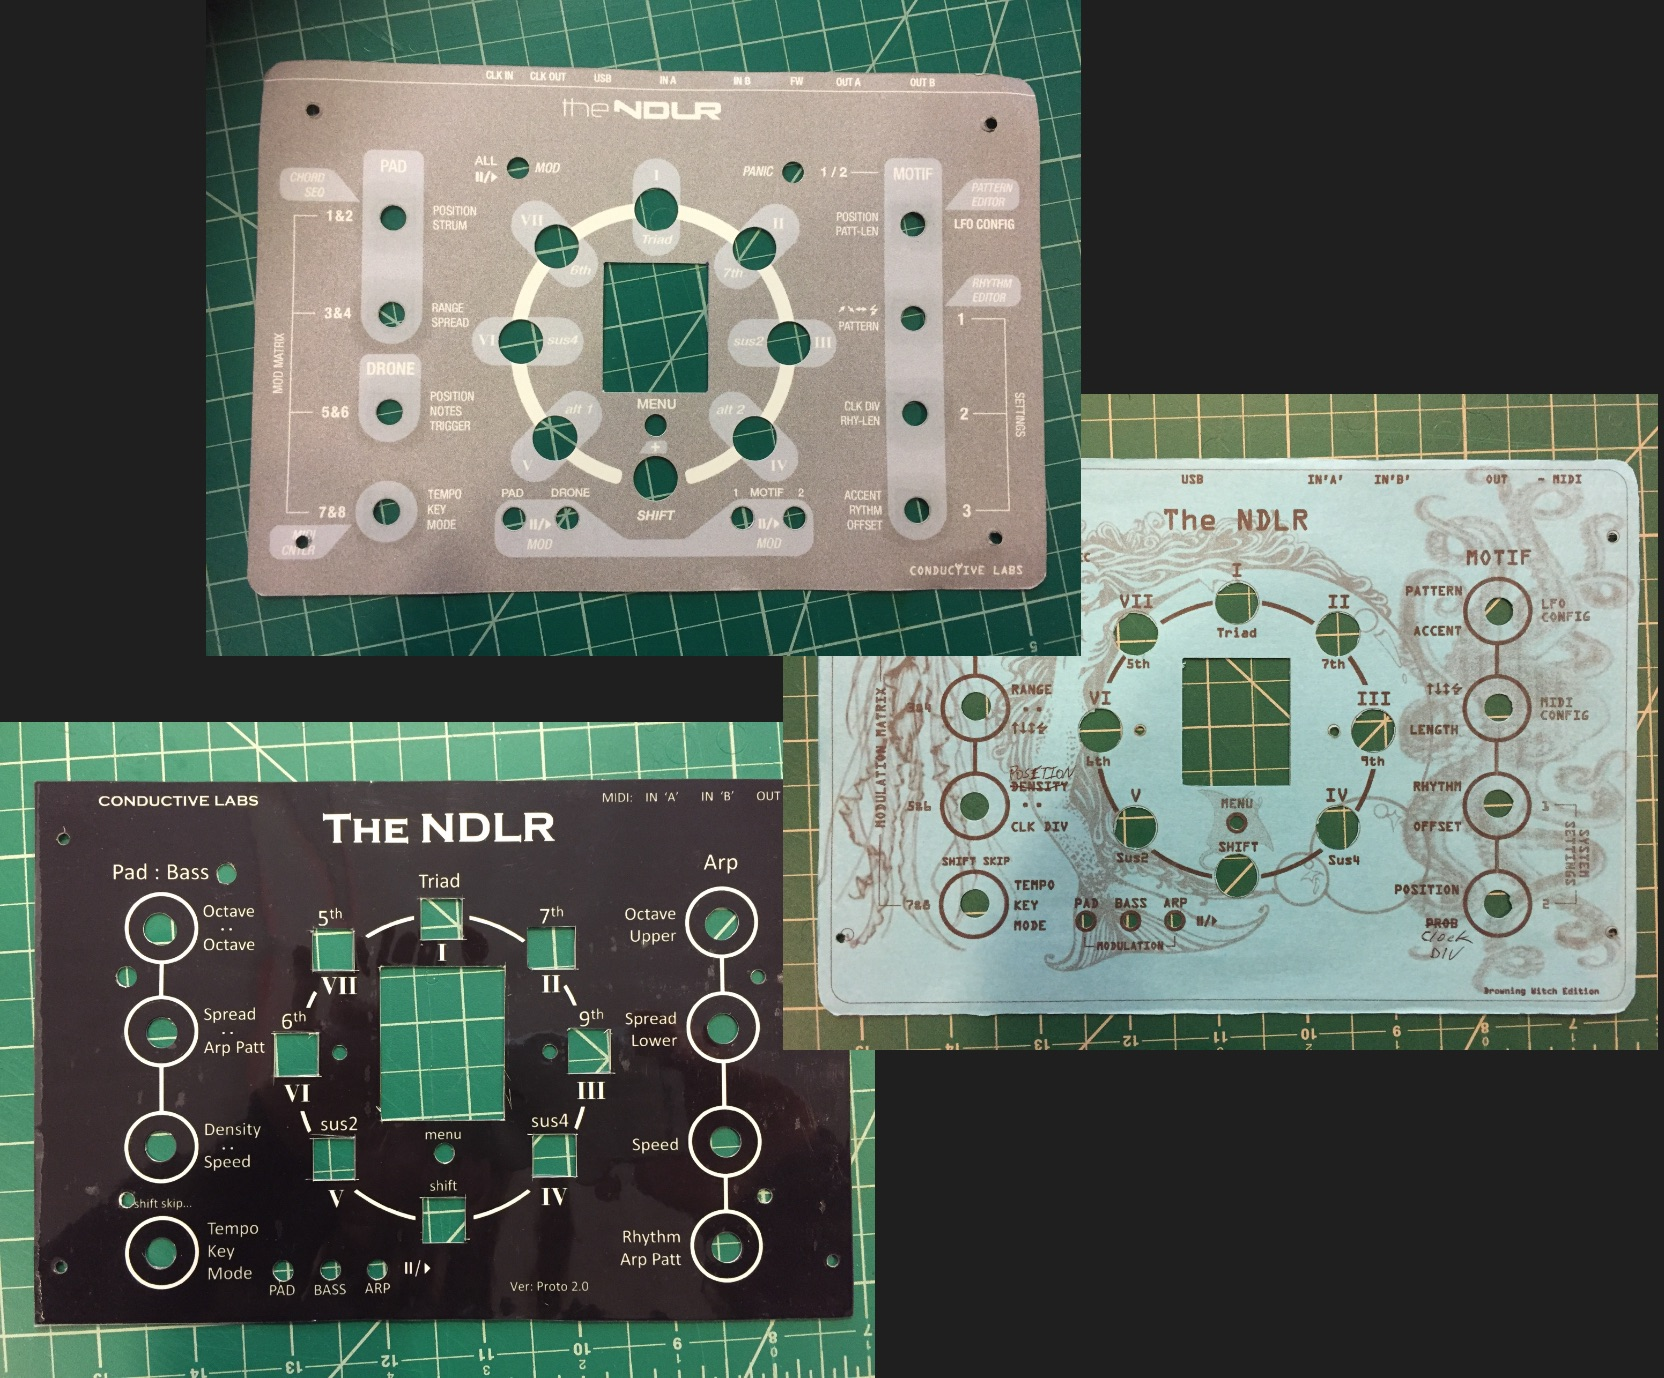 Conductive Labs // S. Barile & D. McGee // various NDLR interfaces